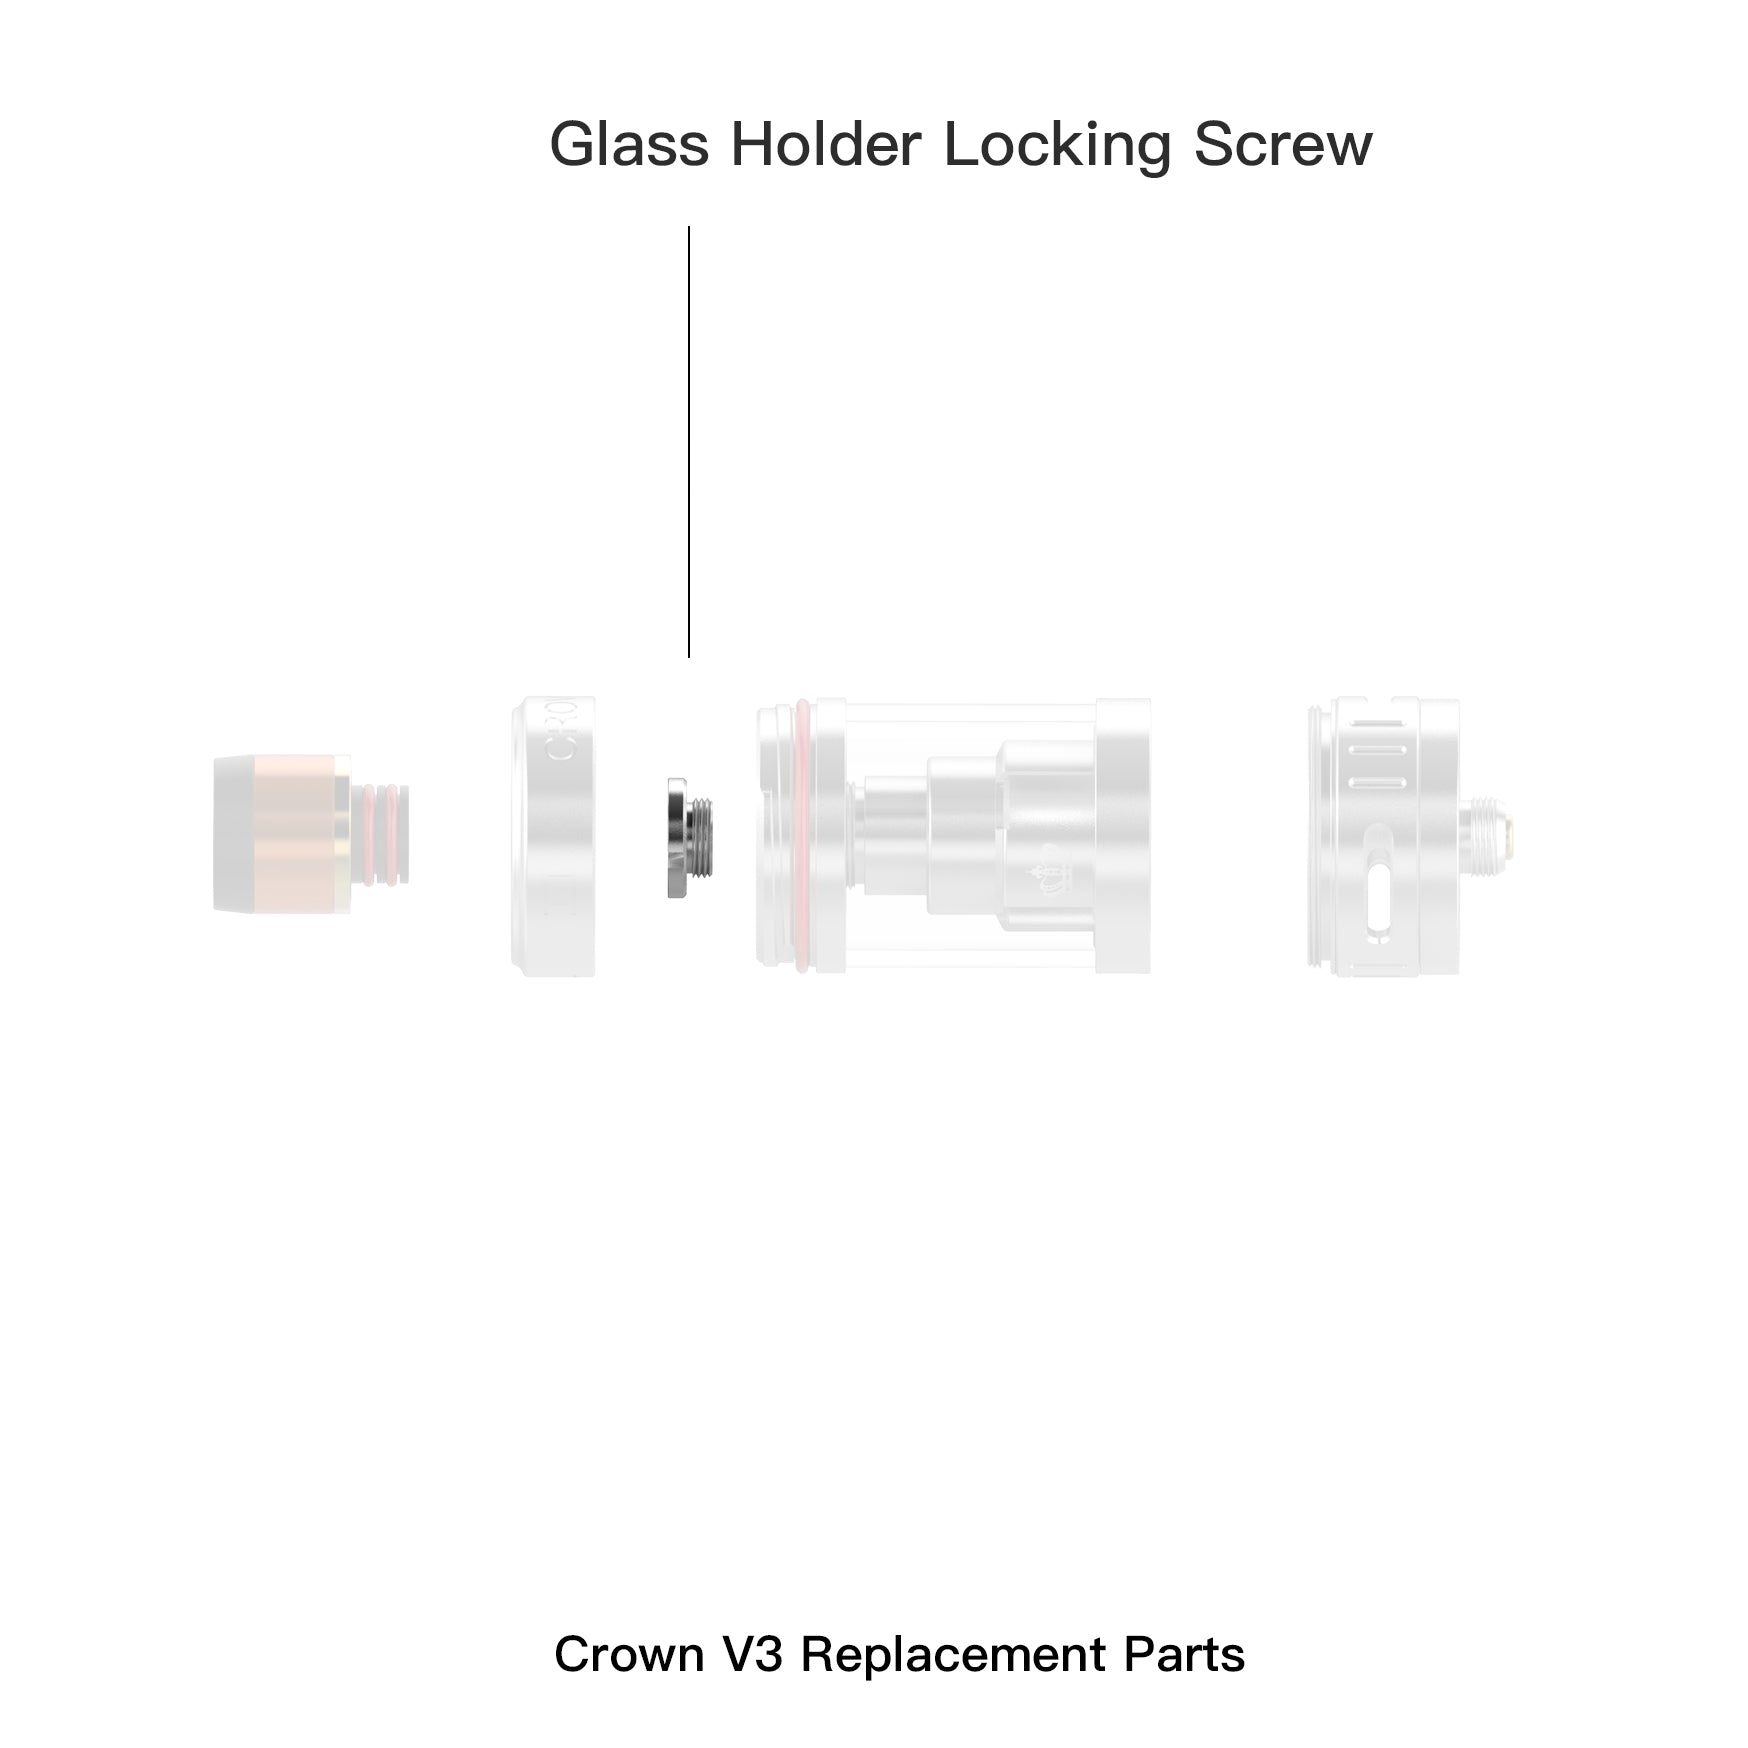 Crown 3 Glass Holder Locking Screw